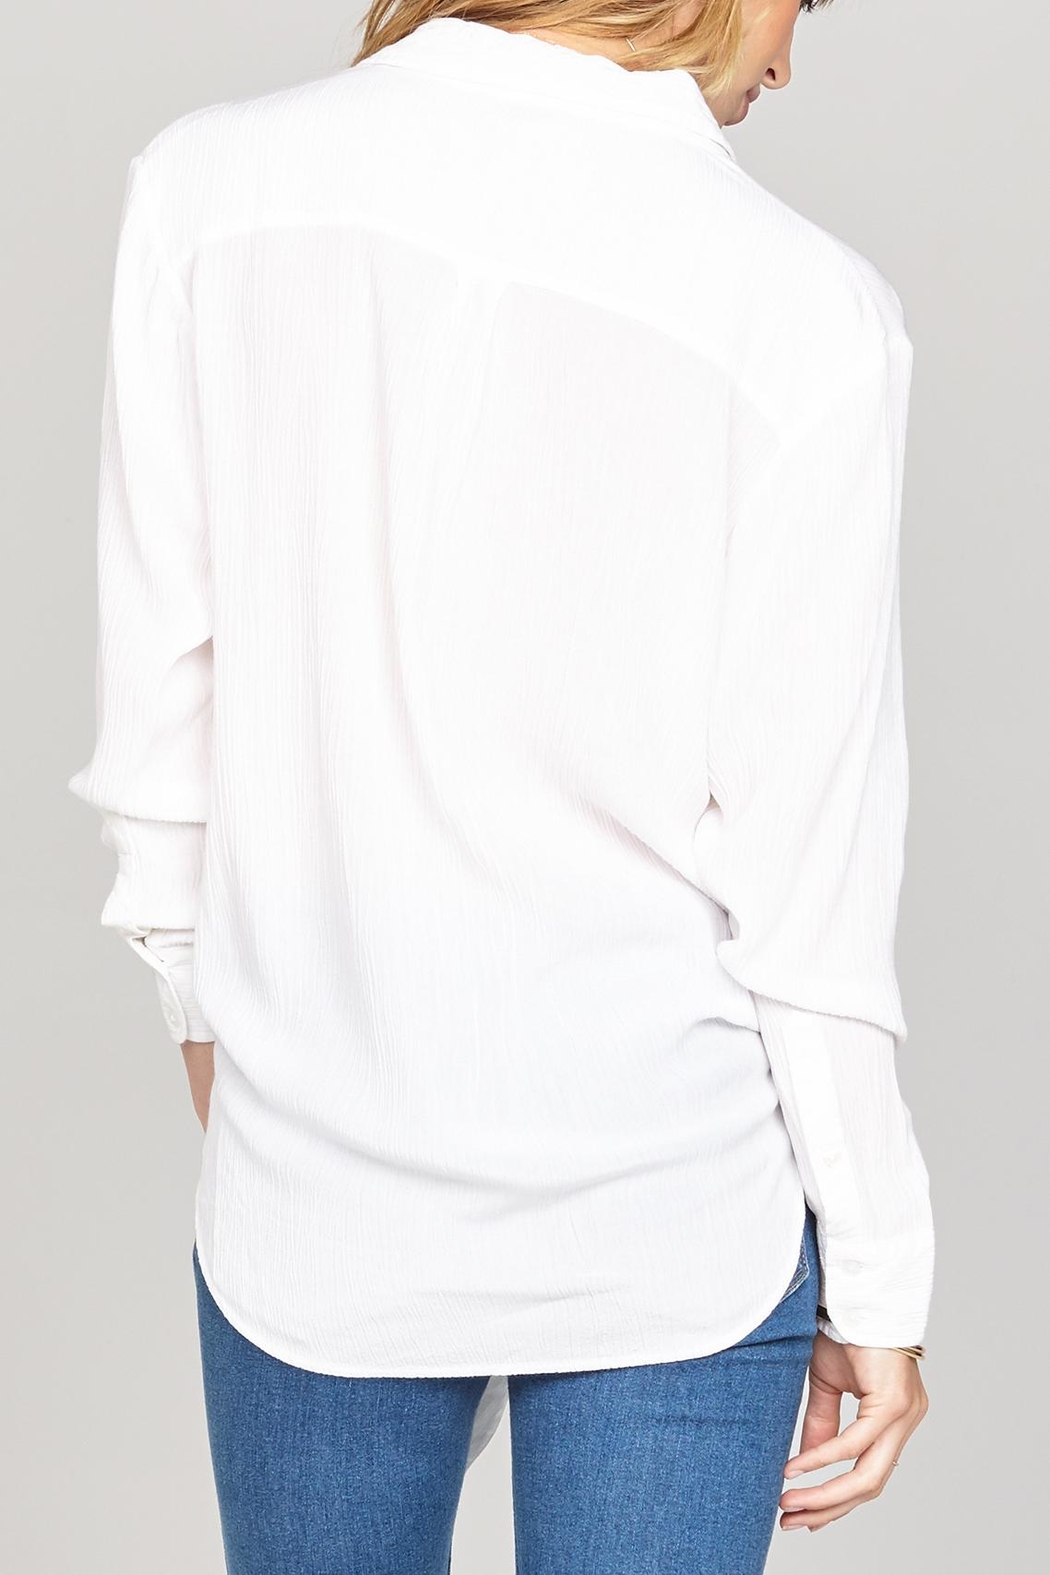 AMUSE SOCIETY C'est Woven Top - Front Full Image